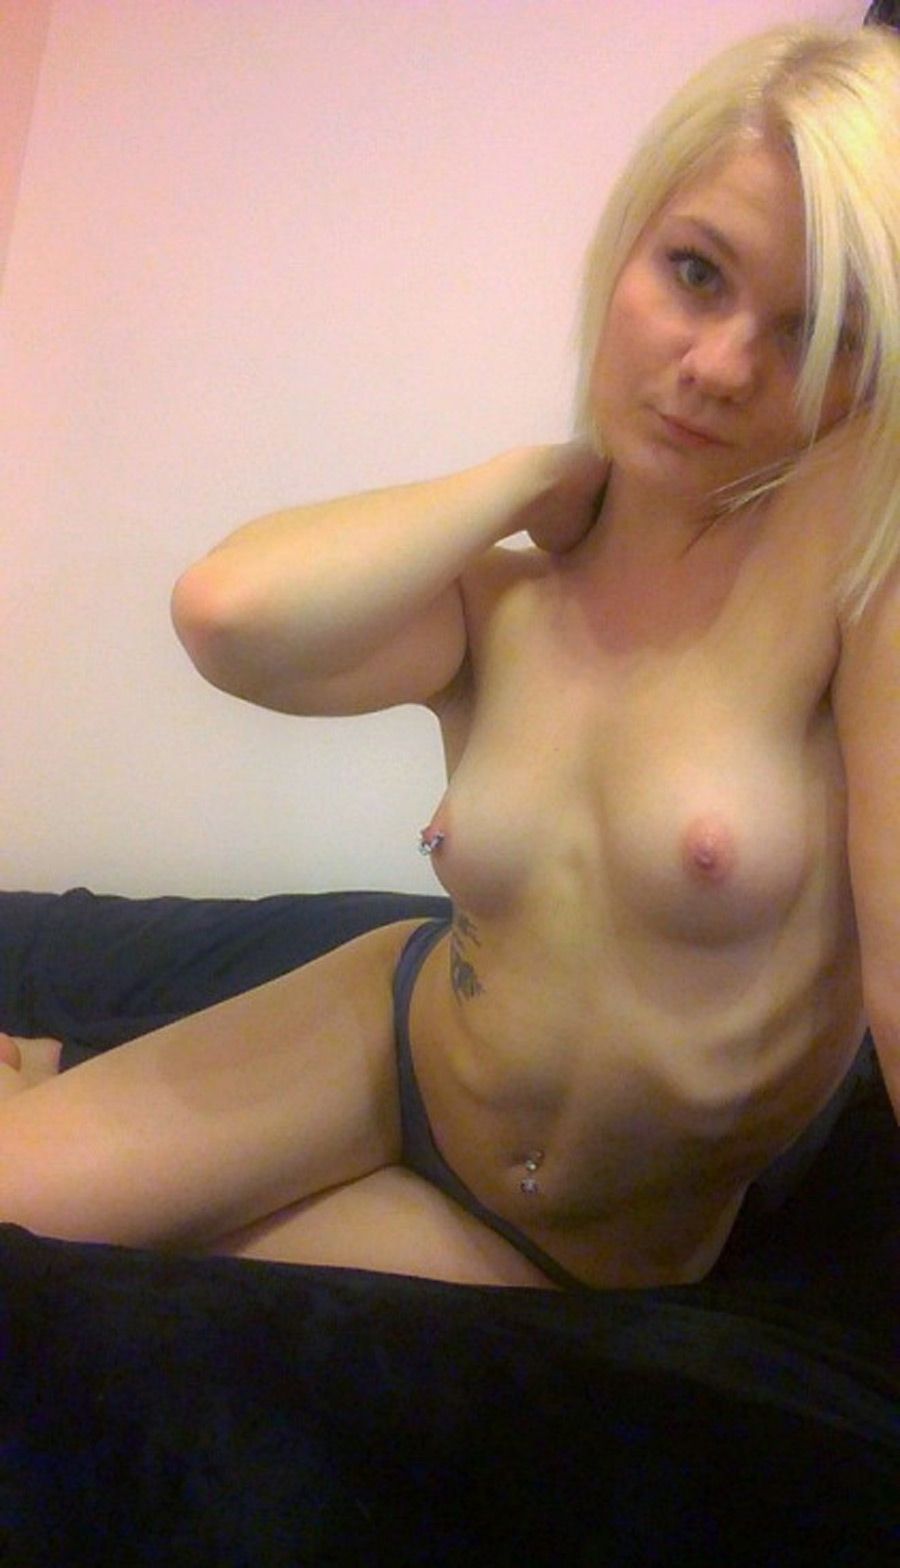 Camille meuf rebelle blonde nue photo 3